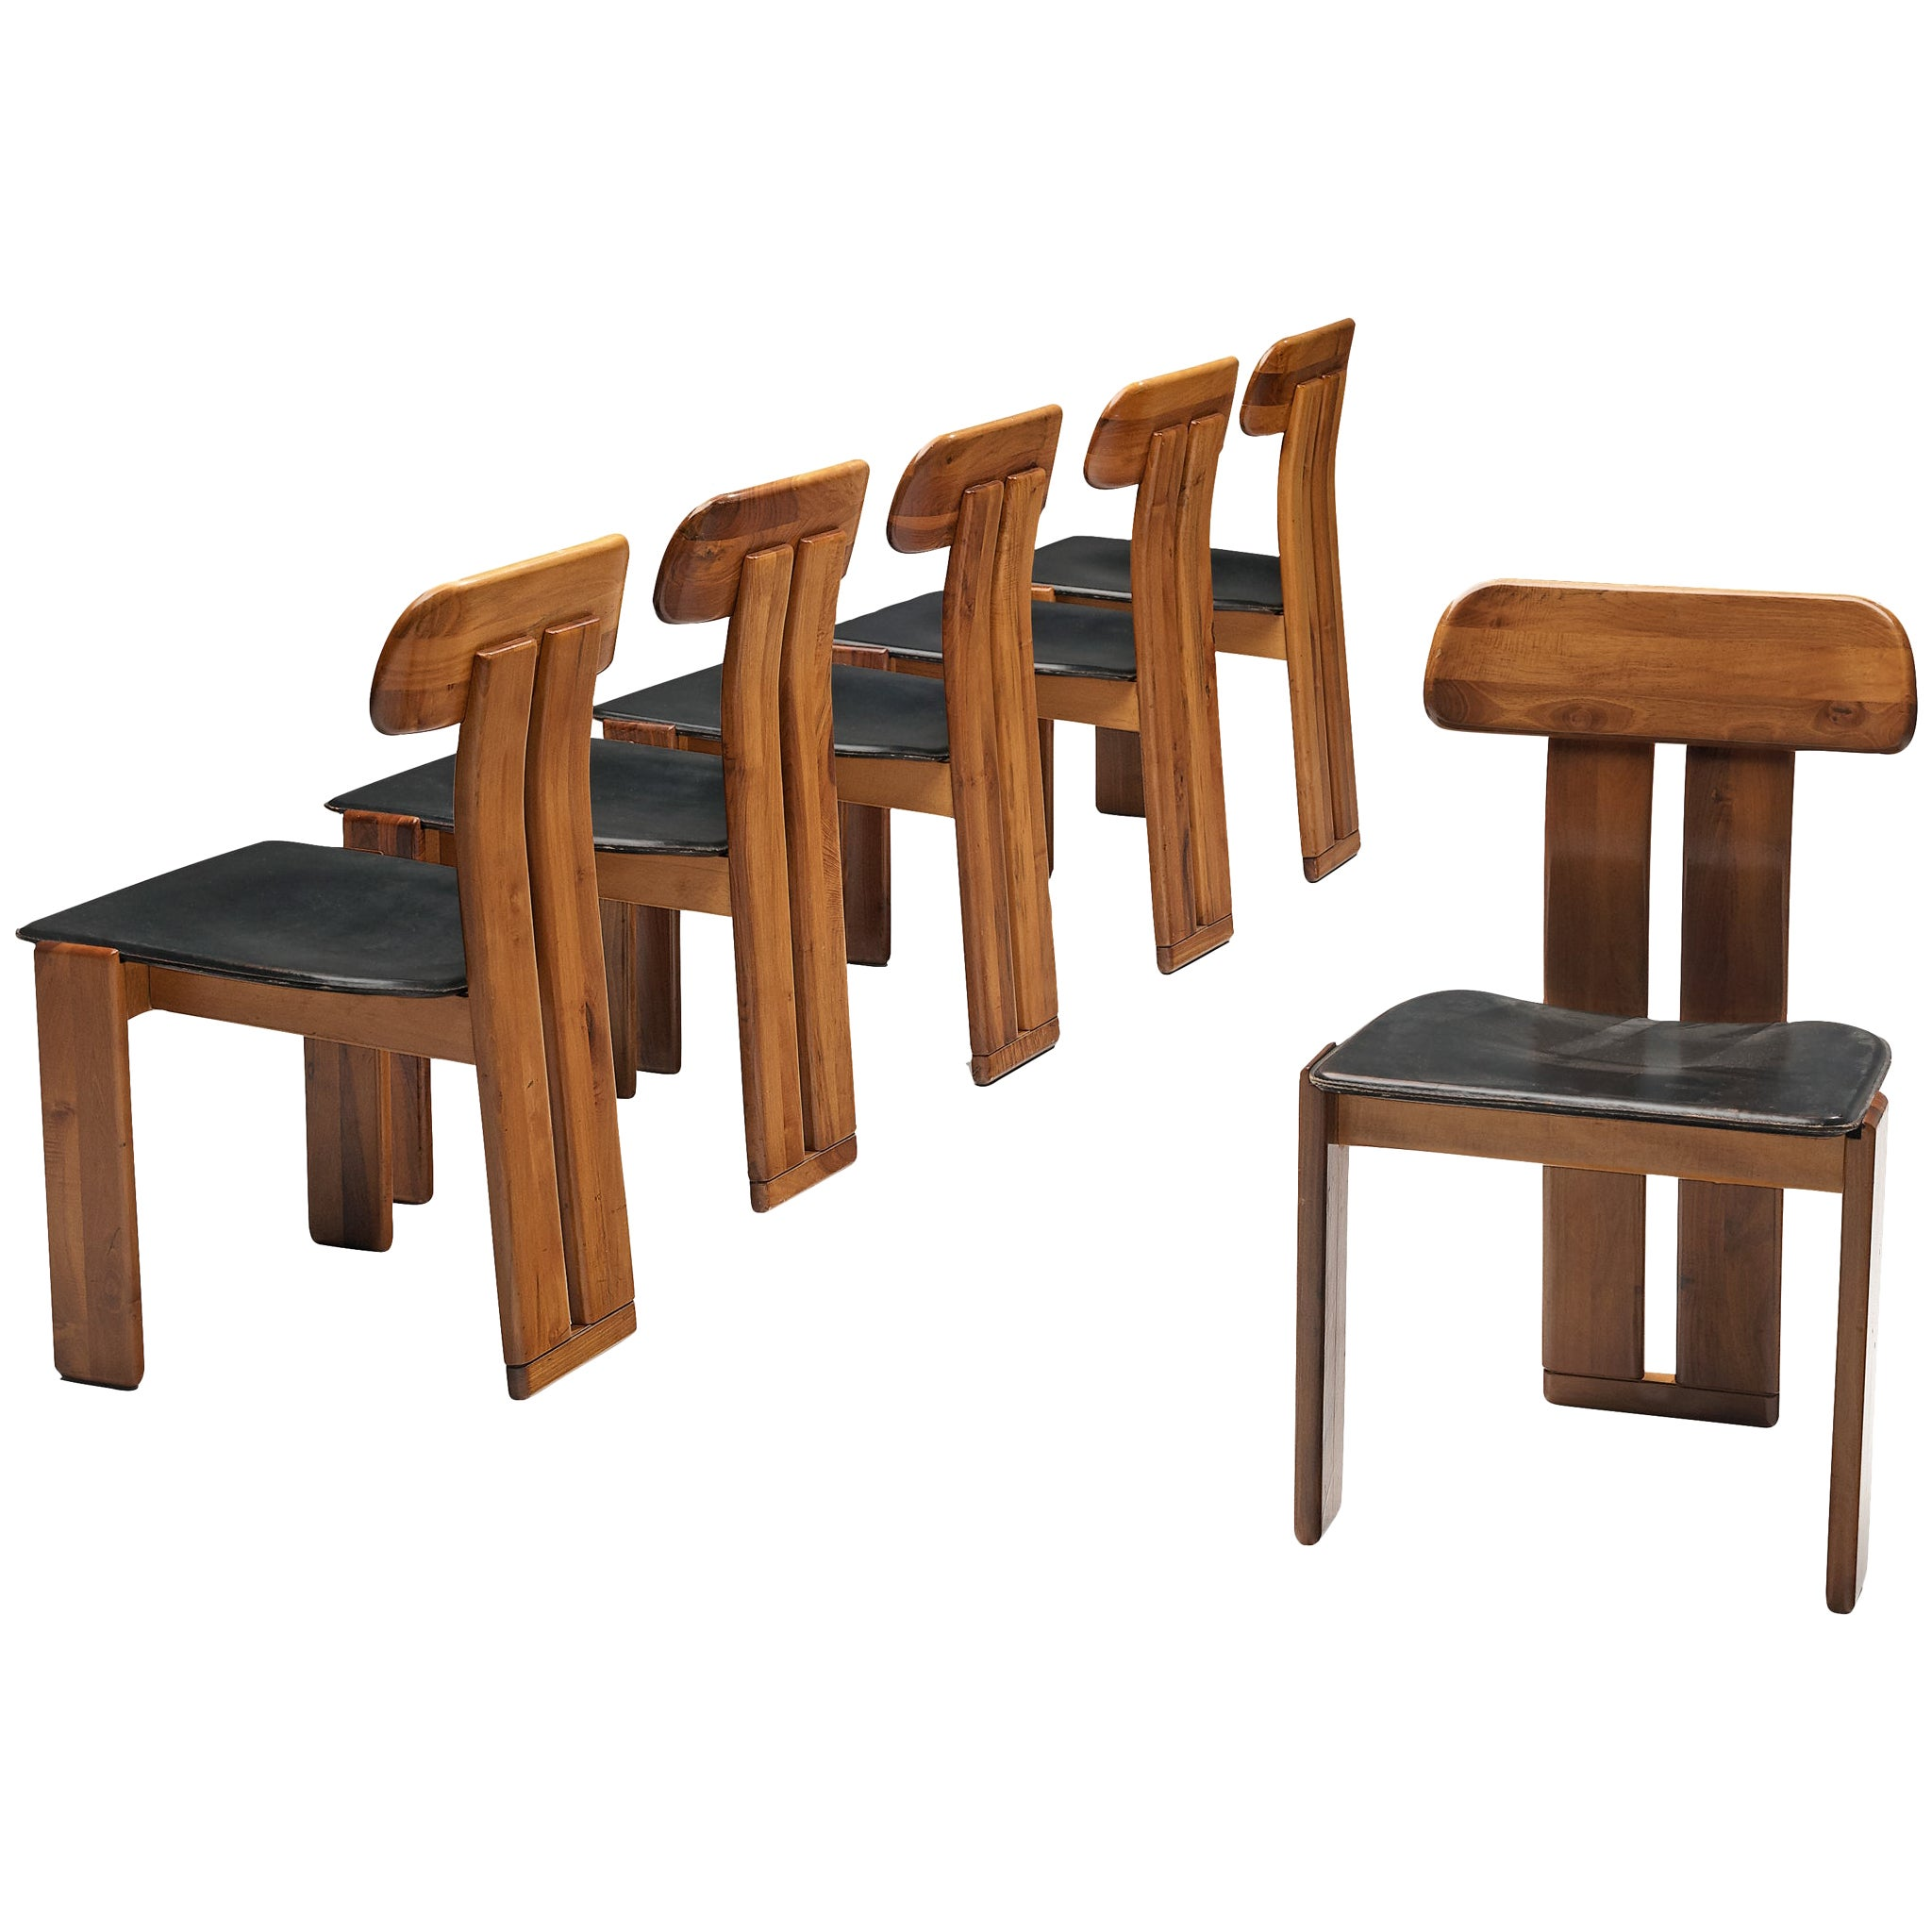 Set of Six Italian Dining Chairs by Sapporo in Black Leather and Walnut